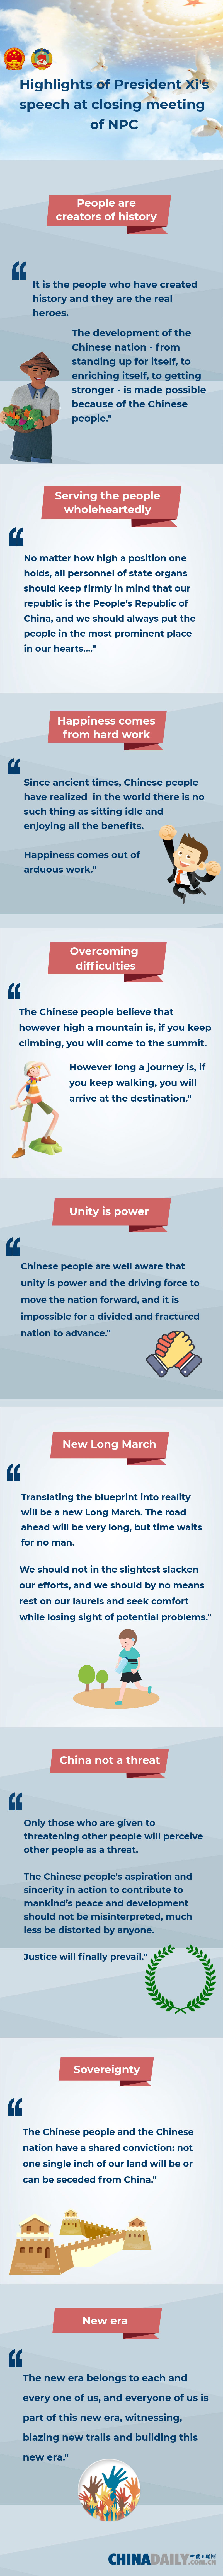 Infographics | Xi's Speech at NPC Closing Meeting